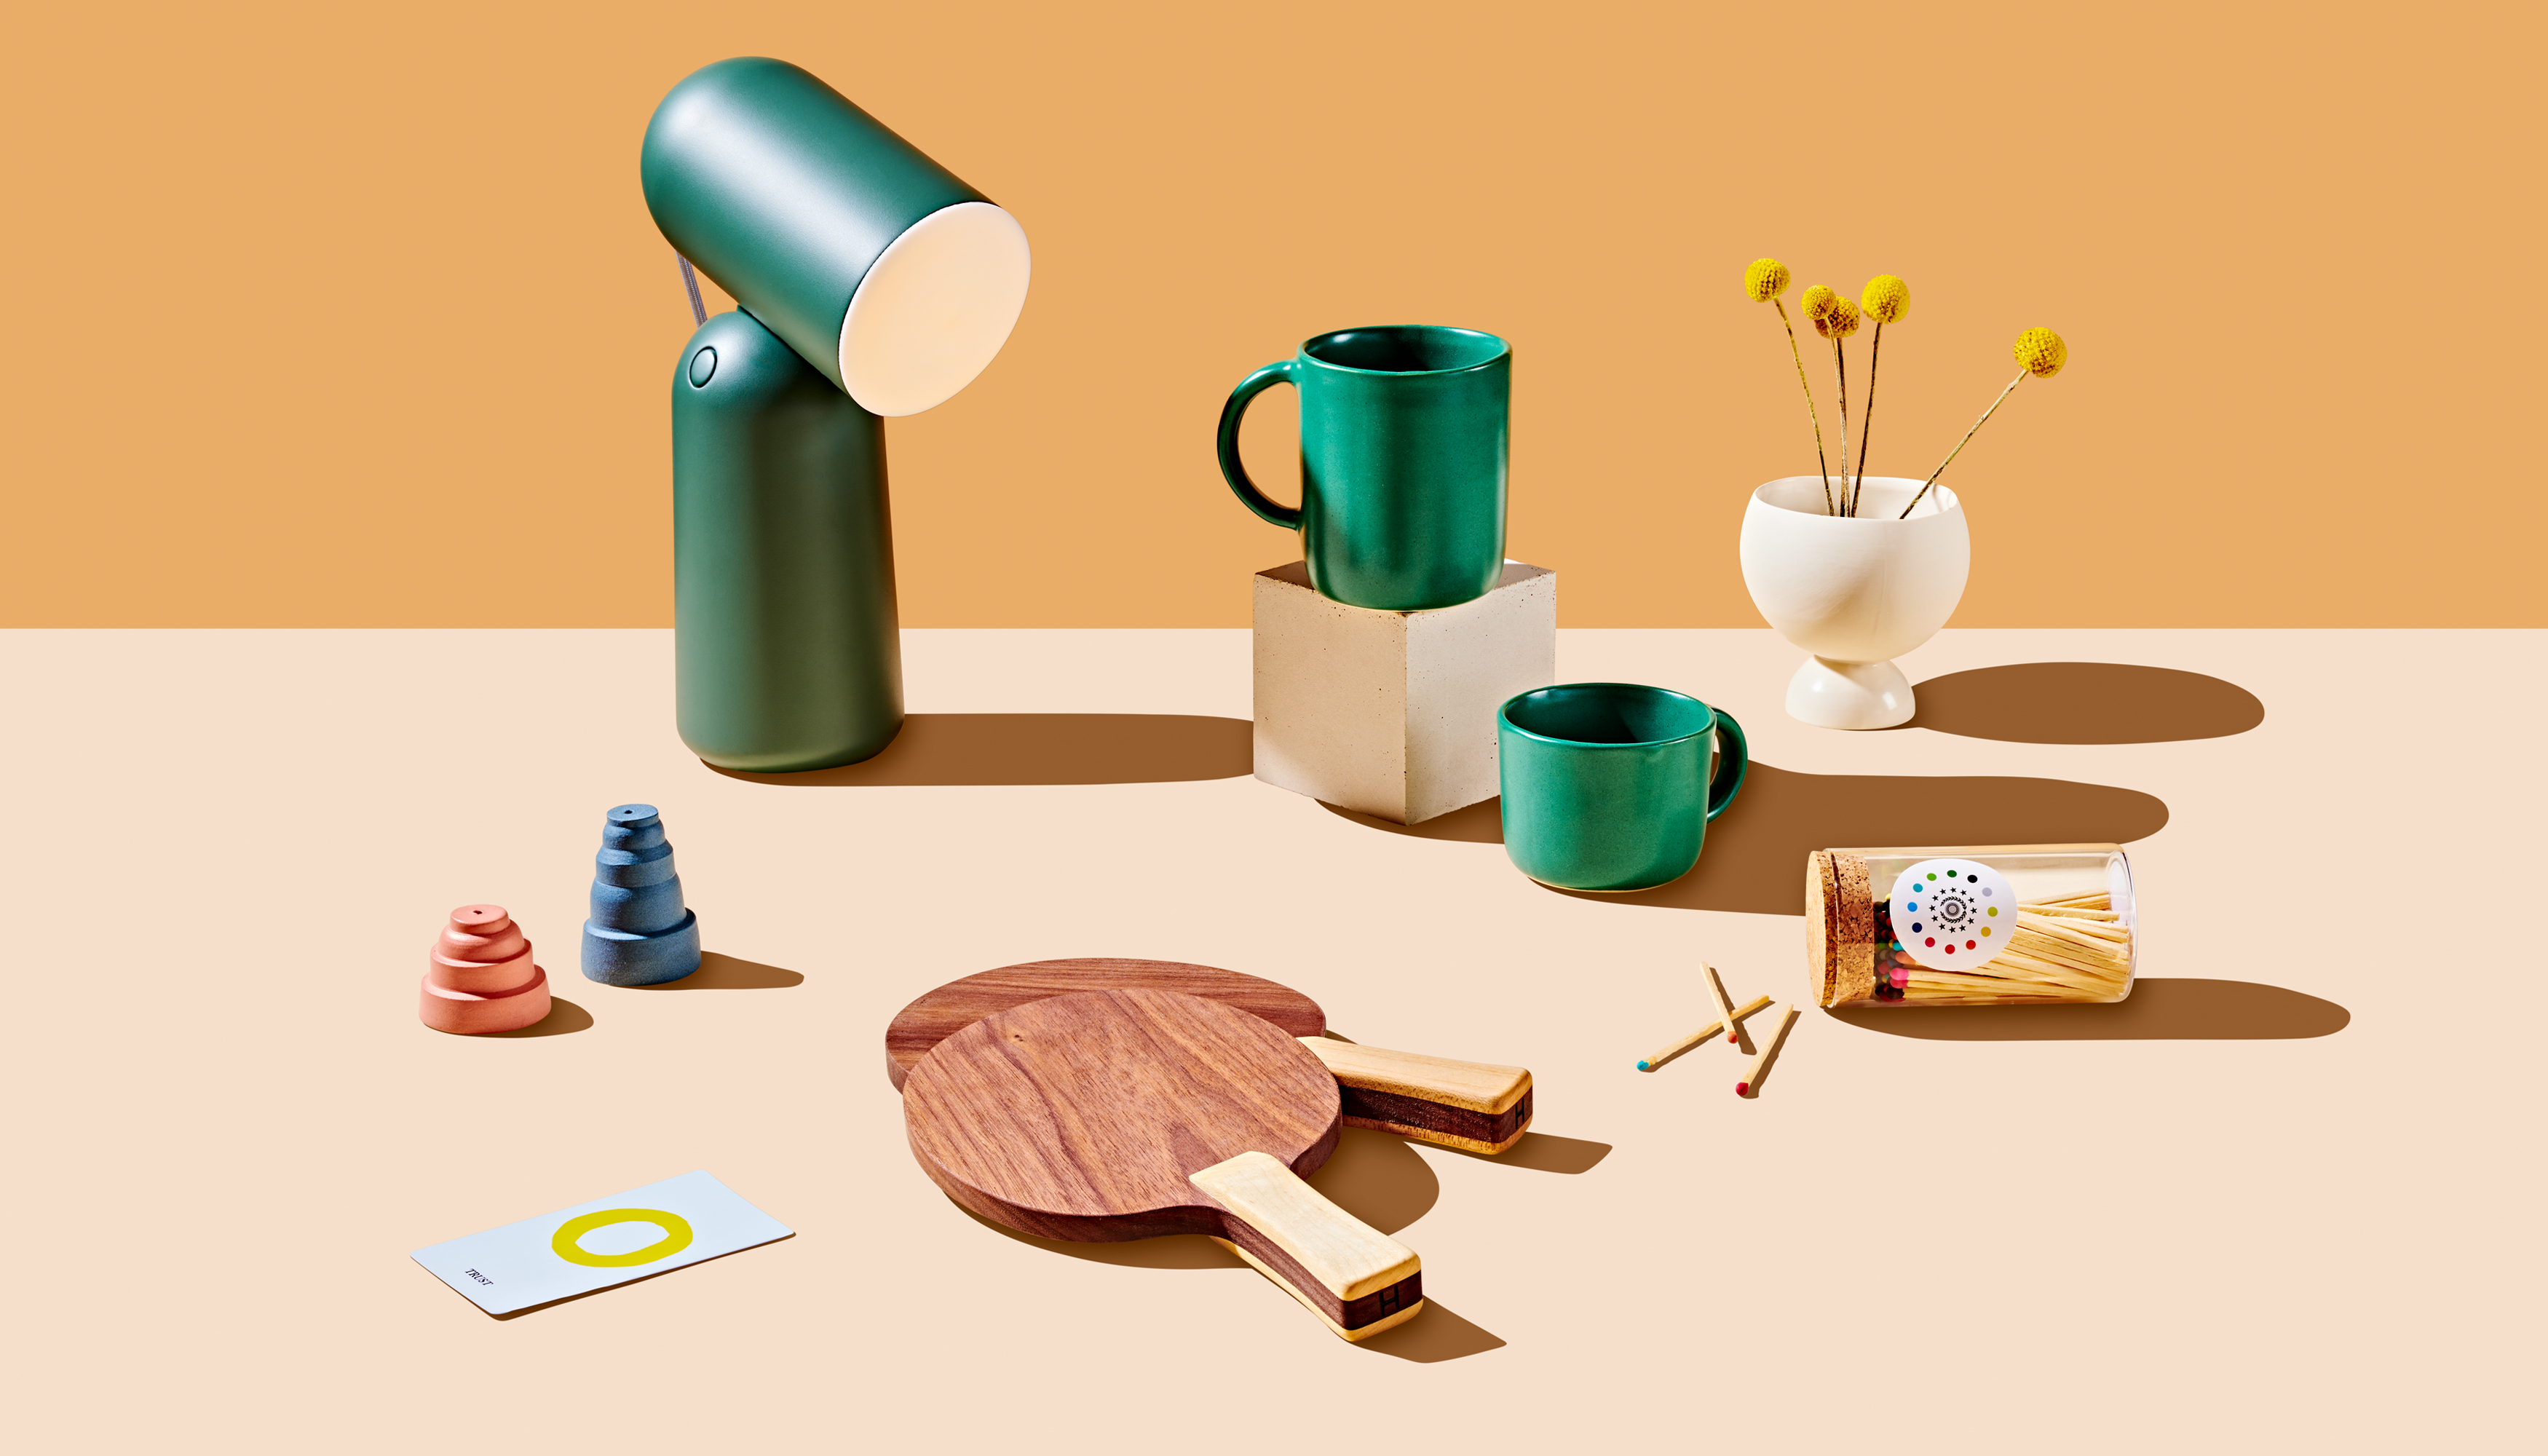 A grouping of objects arranged on a table for the Curbed Holiday Gift Guide 2019. There is a green lamp, wooden ping pong paddles, green cups, salt and pepper shakers, and matches.